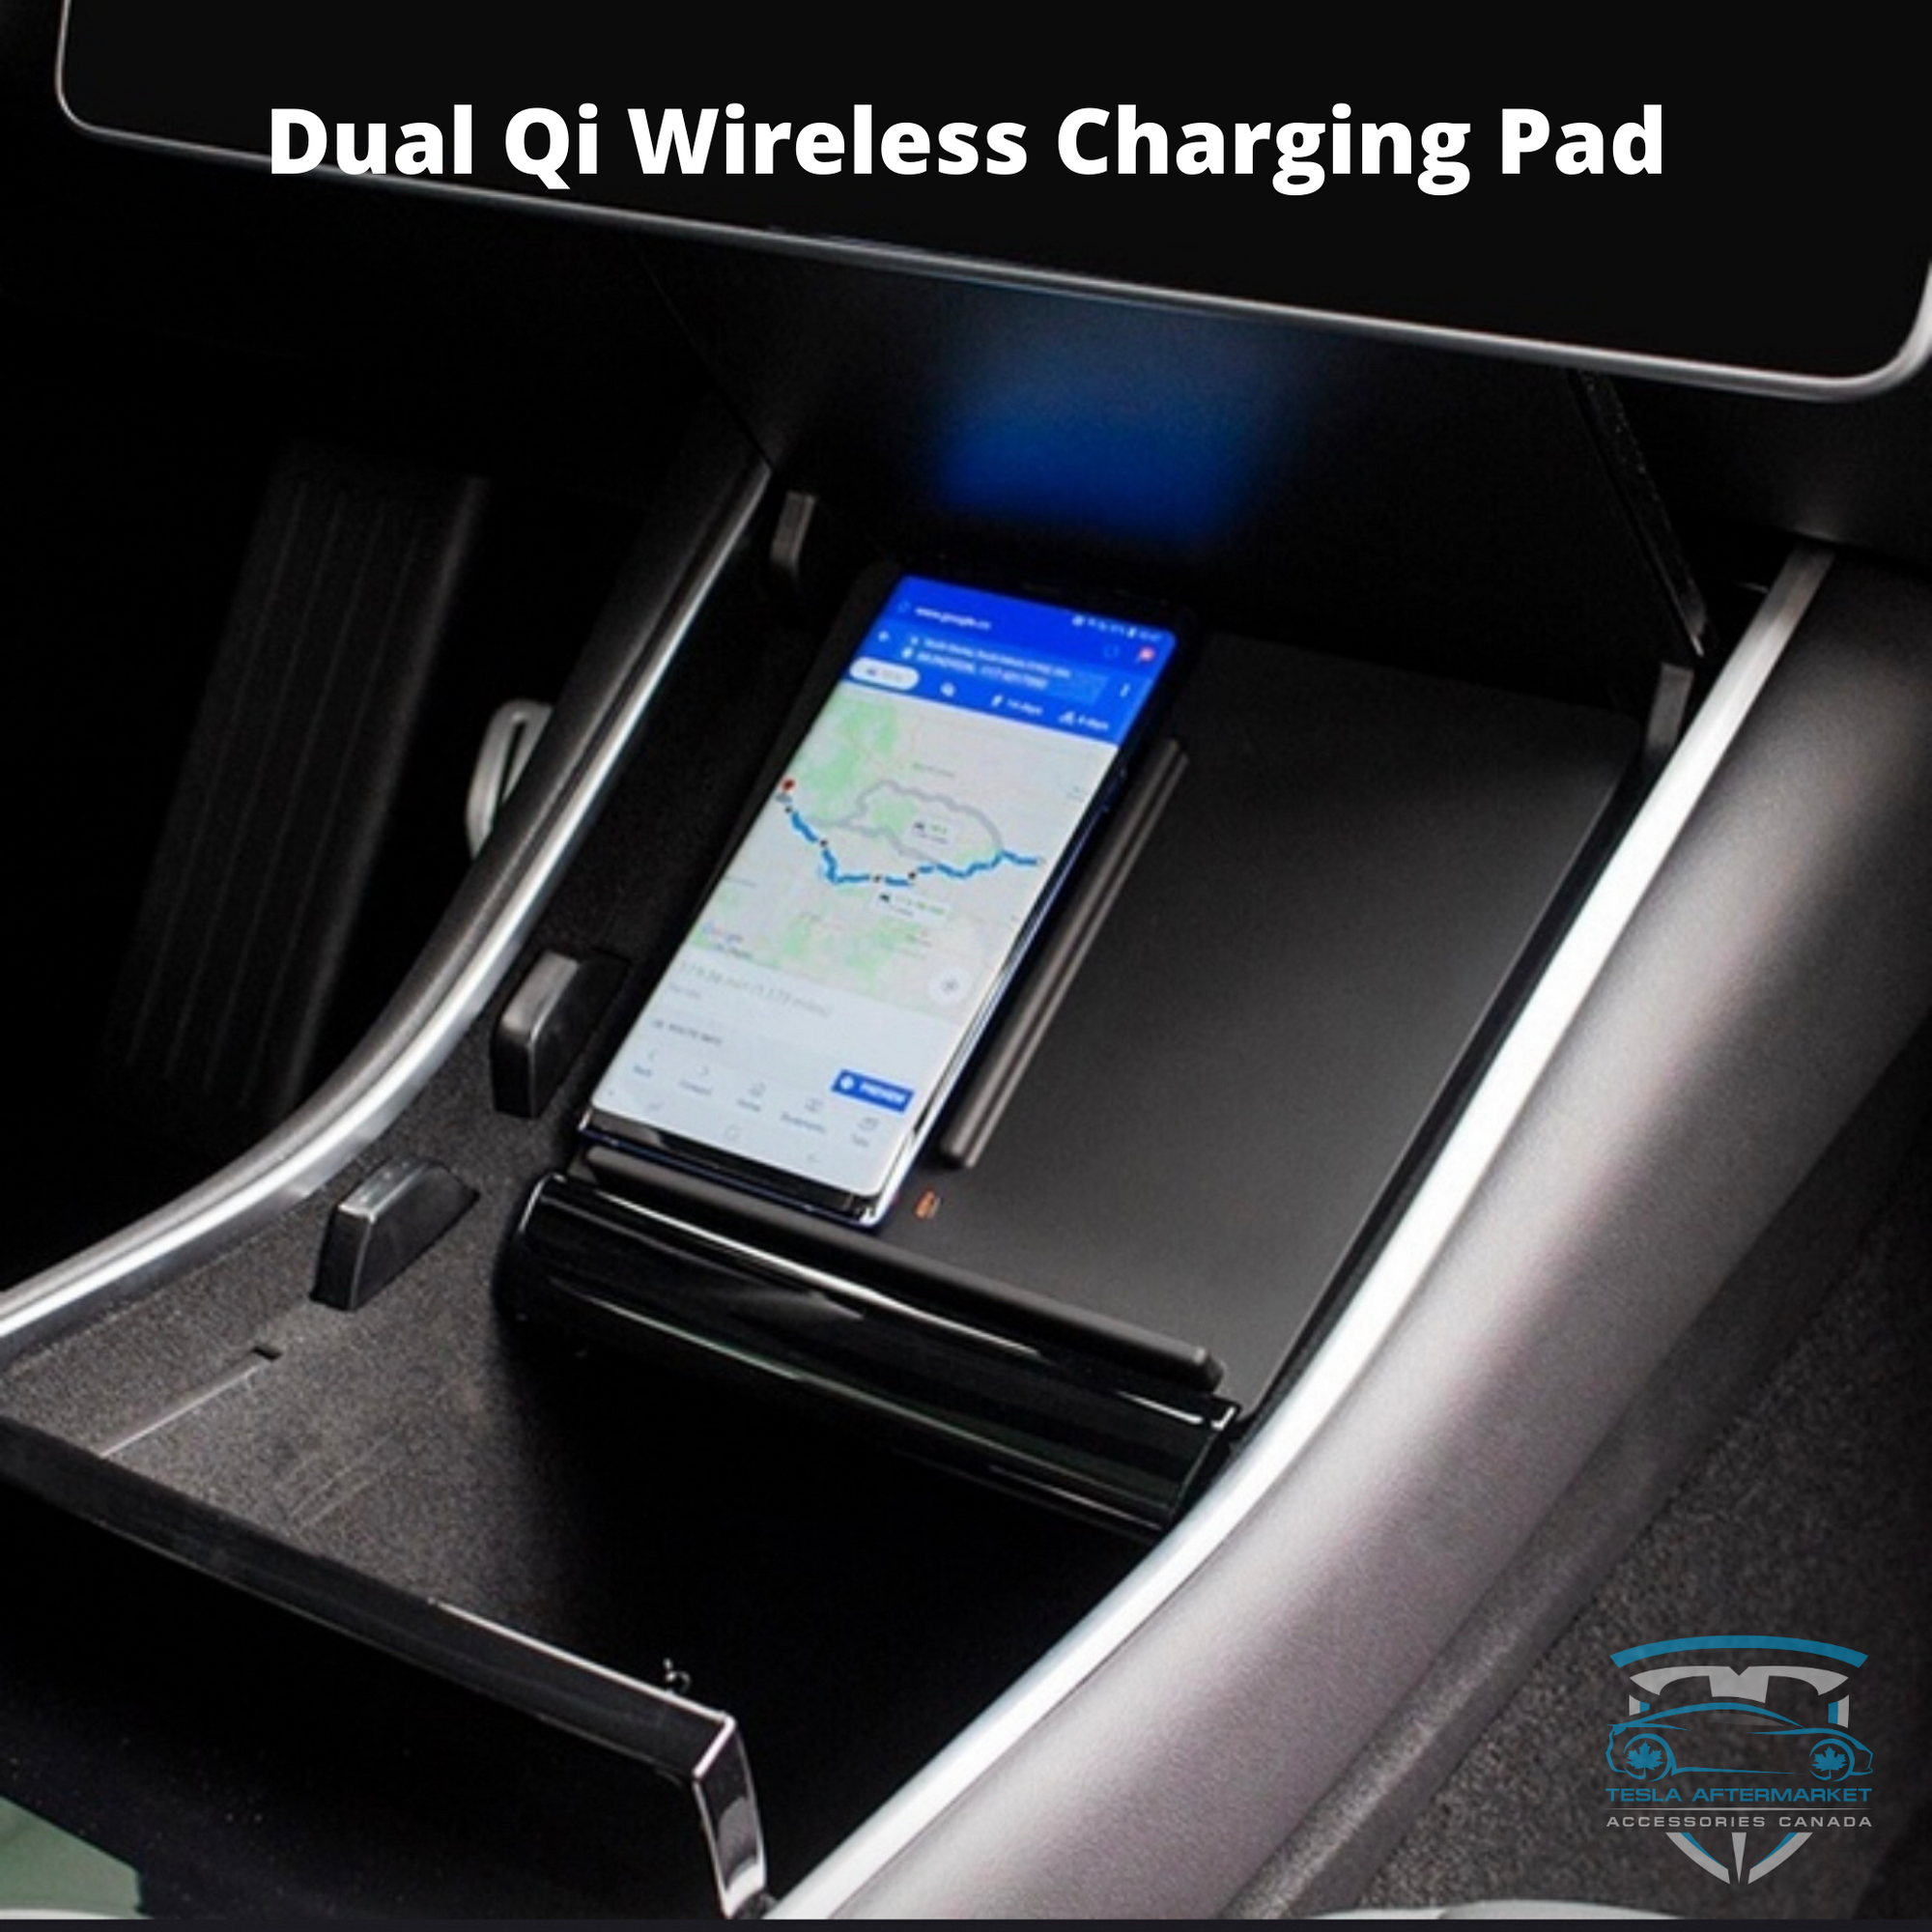 Dual Qi Wireless Charging Pad - Model 3